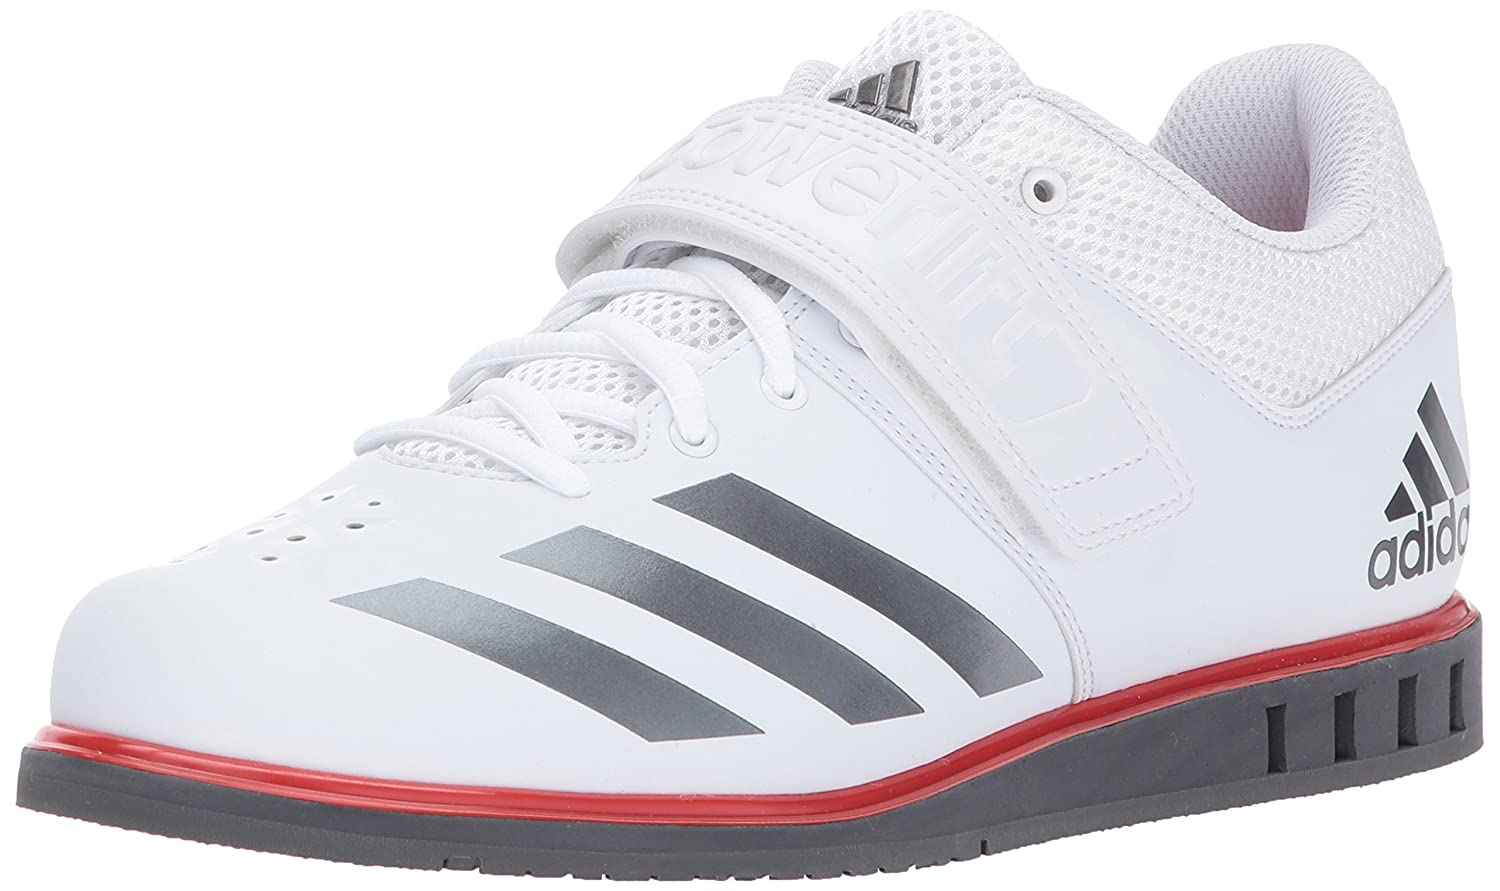 adidas Men's Powerlift.3.1 Cross Trainer B01N4DP1TV 5.5 D(M) US|White/Night Metallic/Grey Five